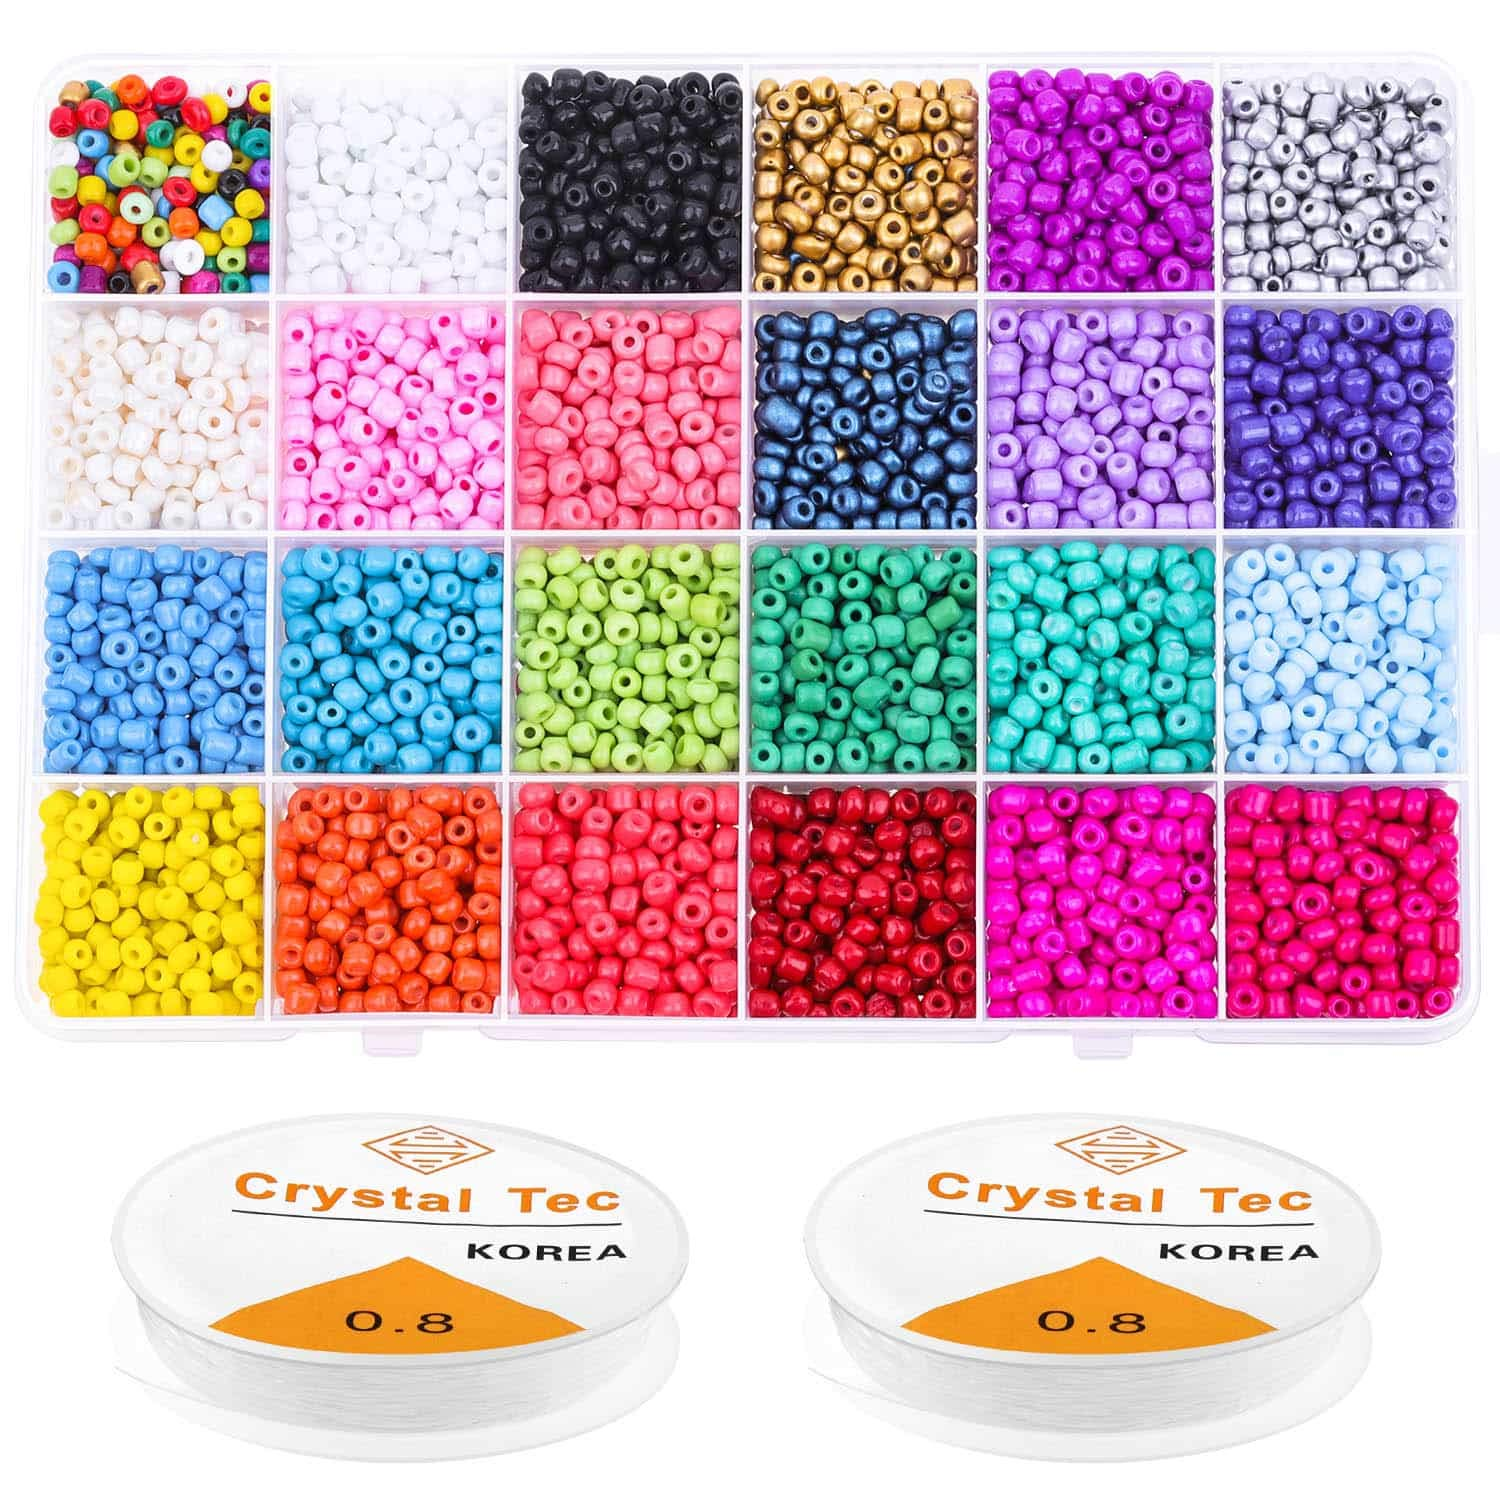 Beads for Bracelets, Anezus 7200 Pcs 4mm Pony Seed Beads Bracelet Beads Small Glass Rainbow Beads for Bracelet Jewelry Making by anezus